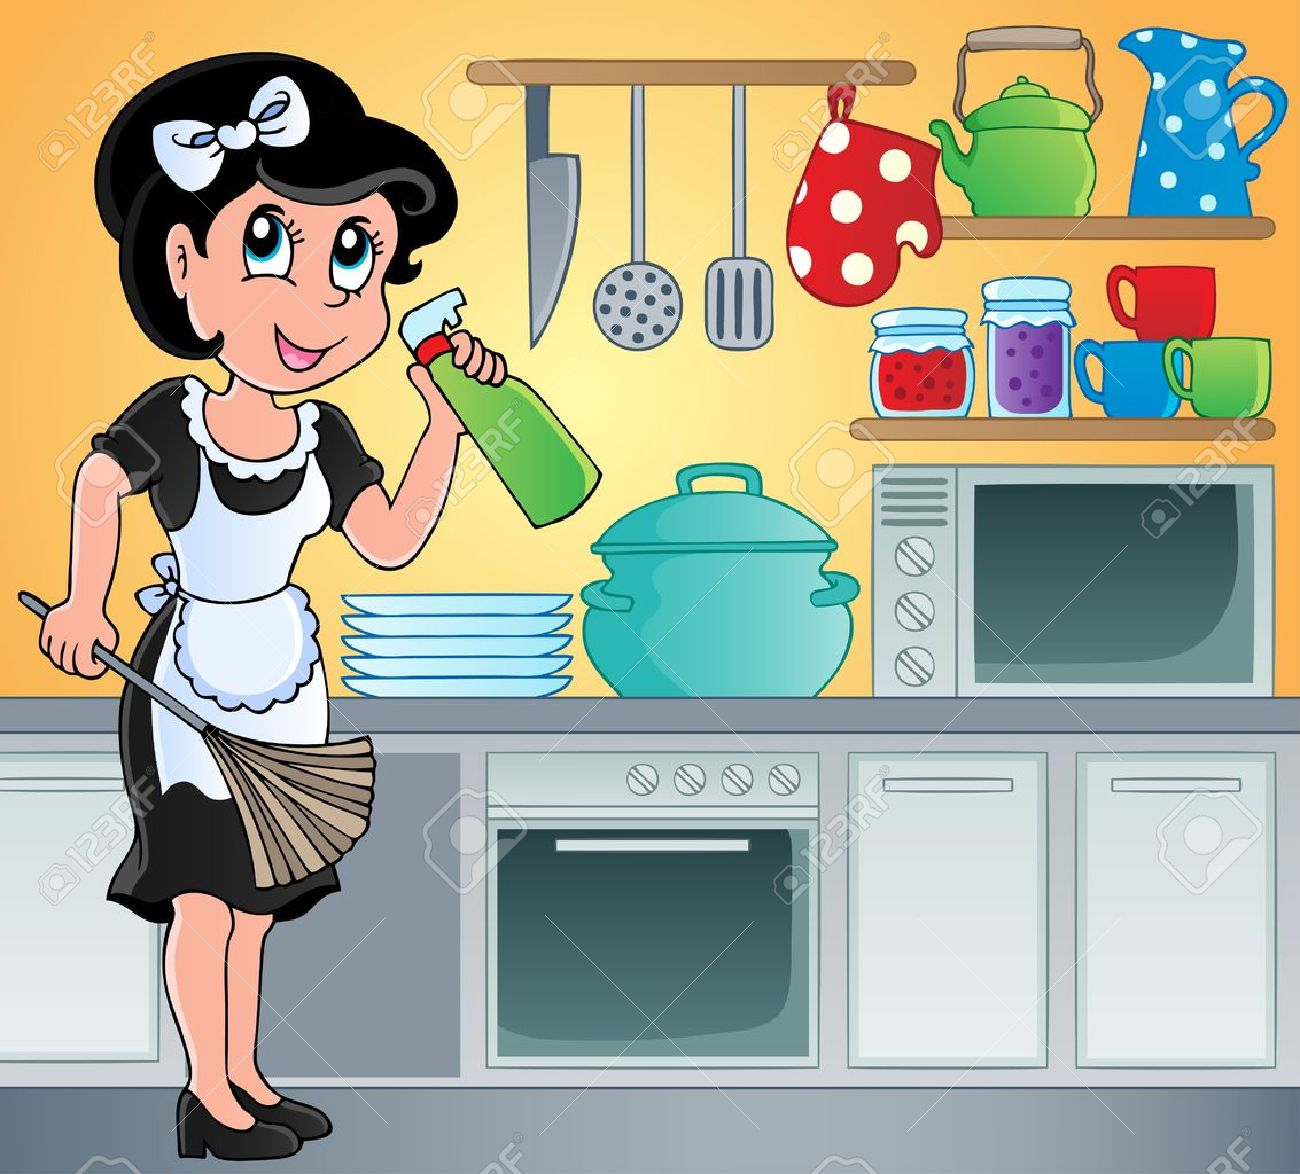 Kitchen Theme Image 7 - Vector Illustration Royalty Free Cliparts ...